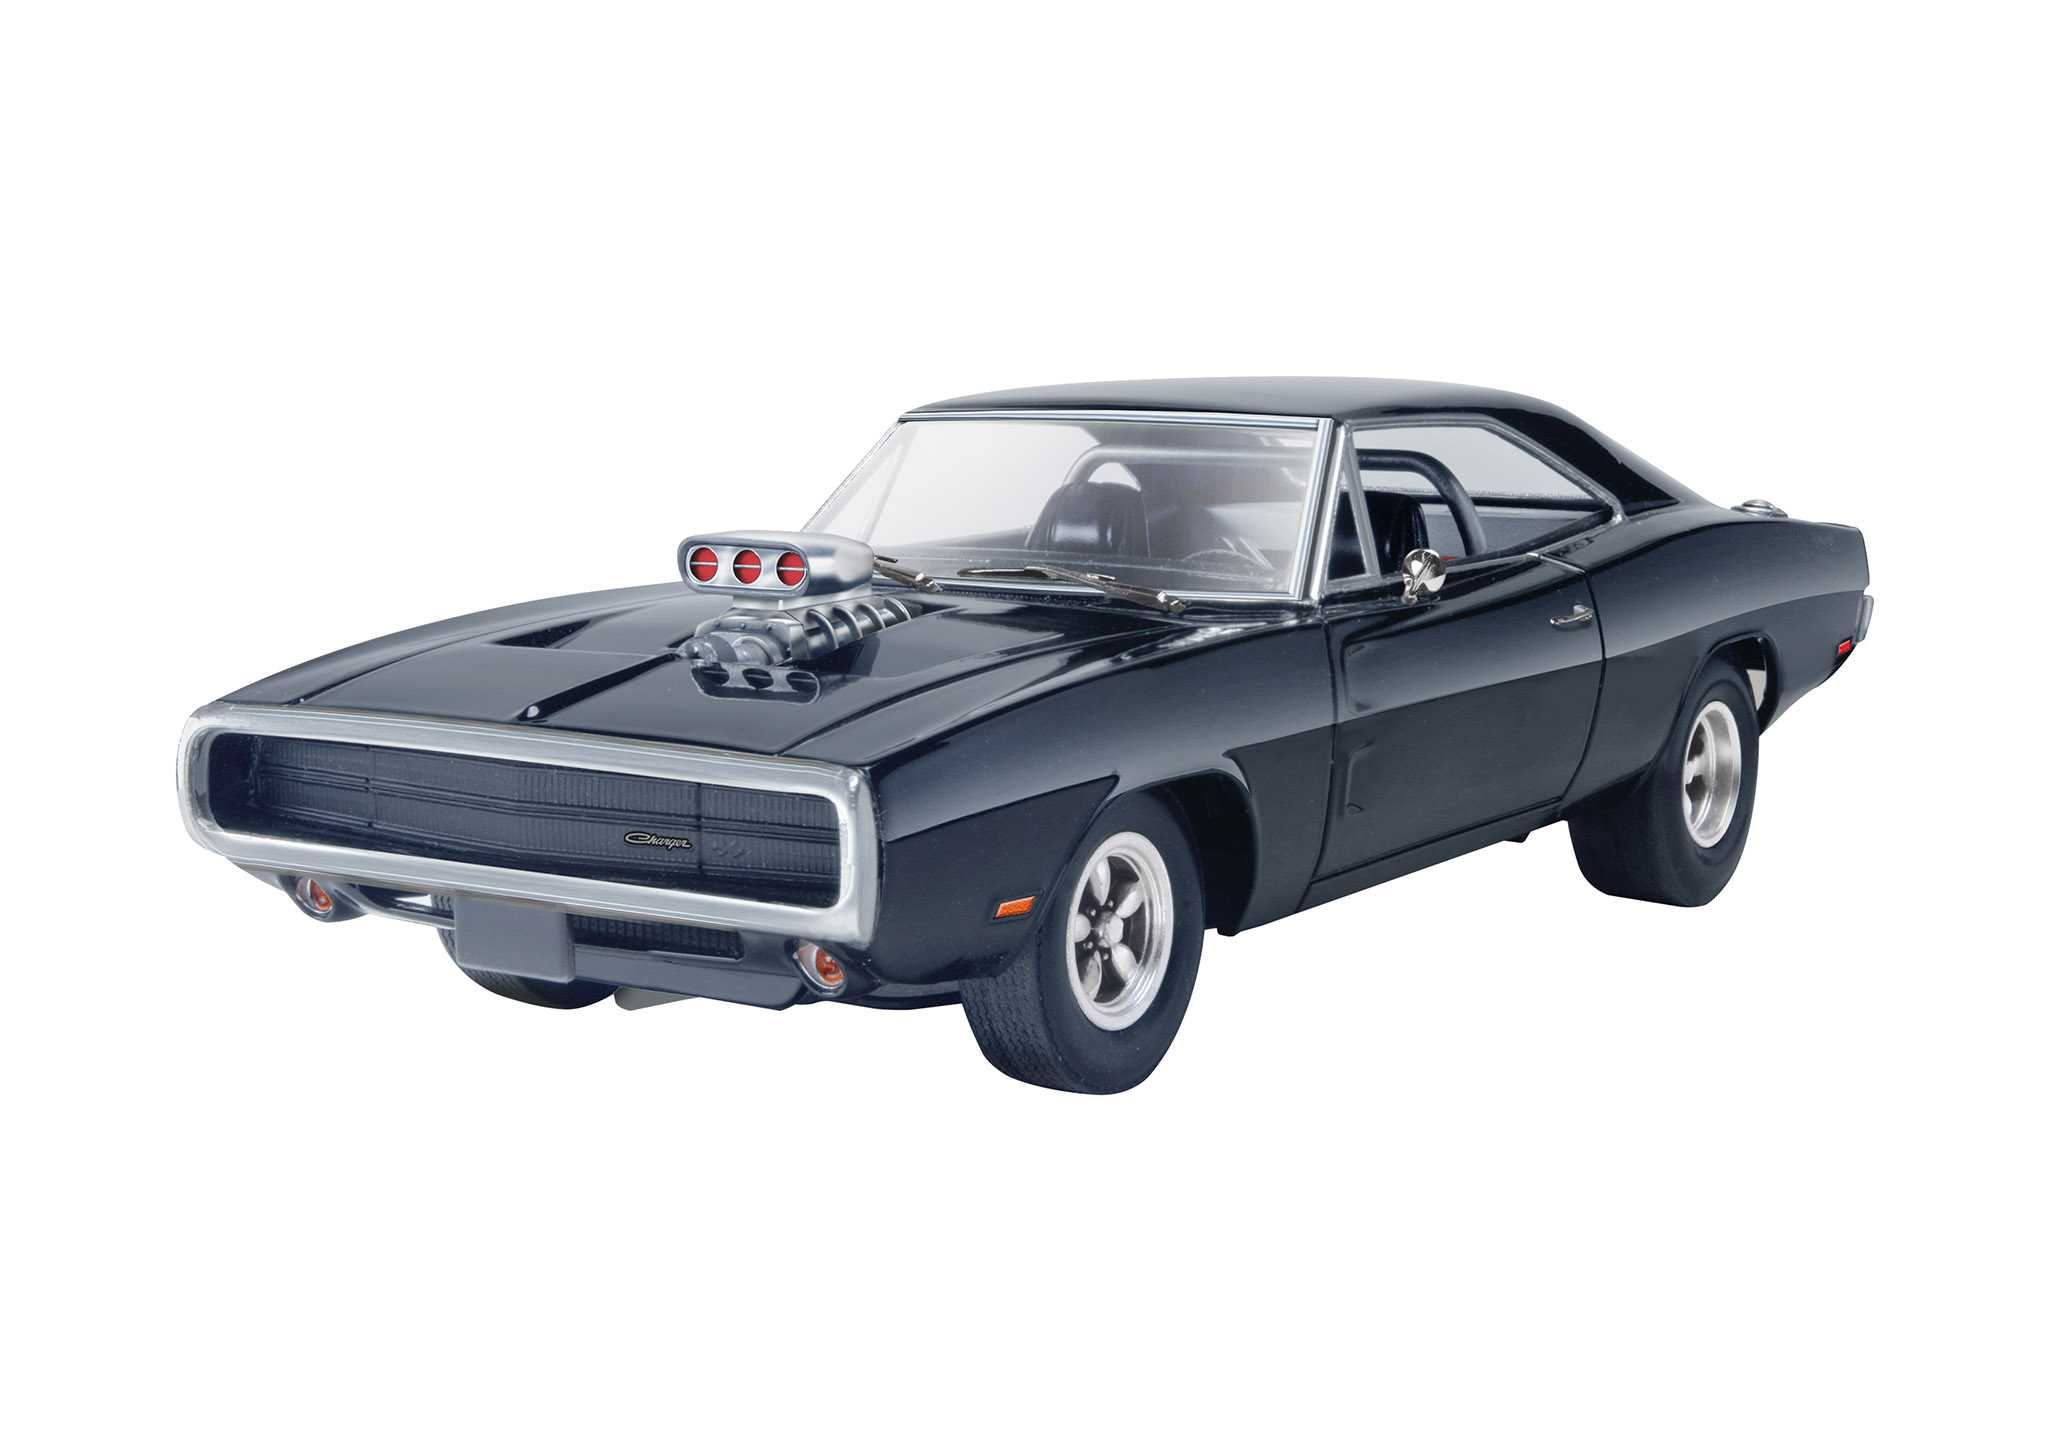 1:25 Fast & Furious Dominic's 1970 Dodge Charger